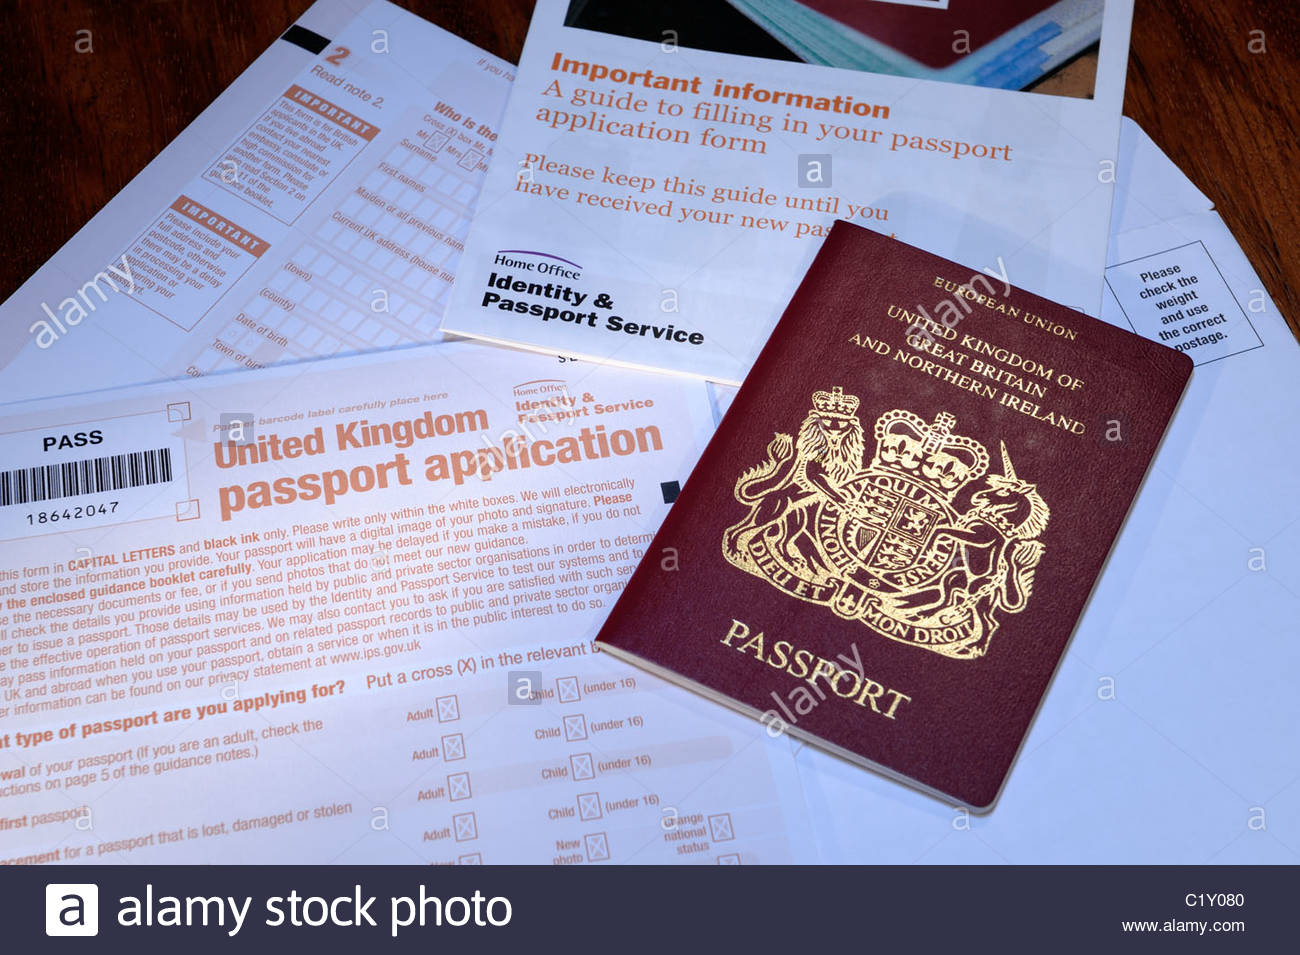 Application Form For Lost Passport Uk